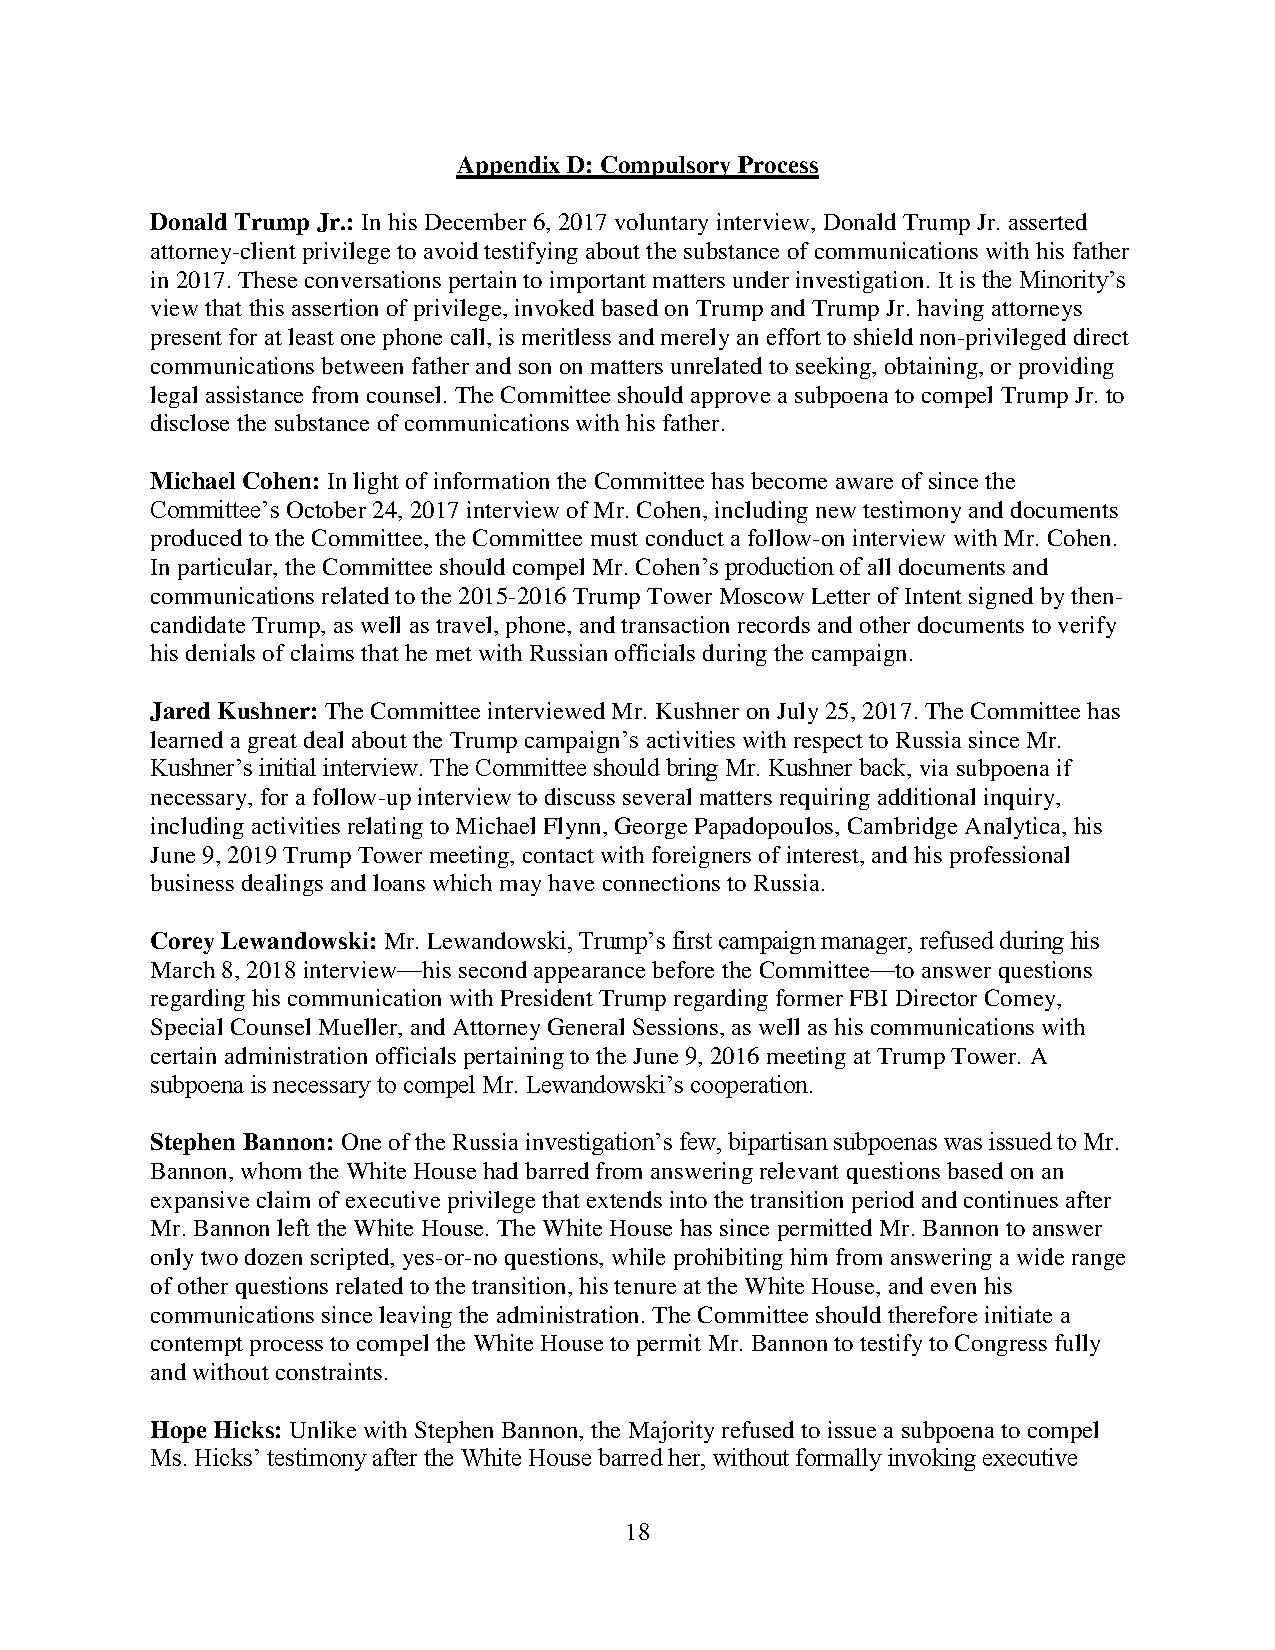 Page:Final - minority status of the russia investigation